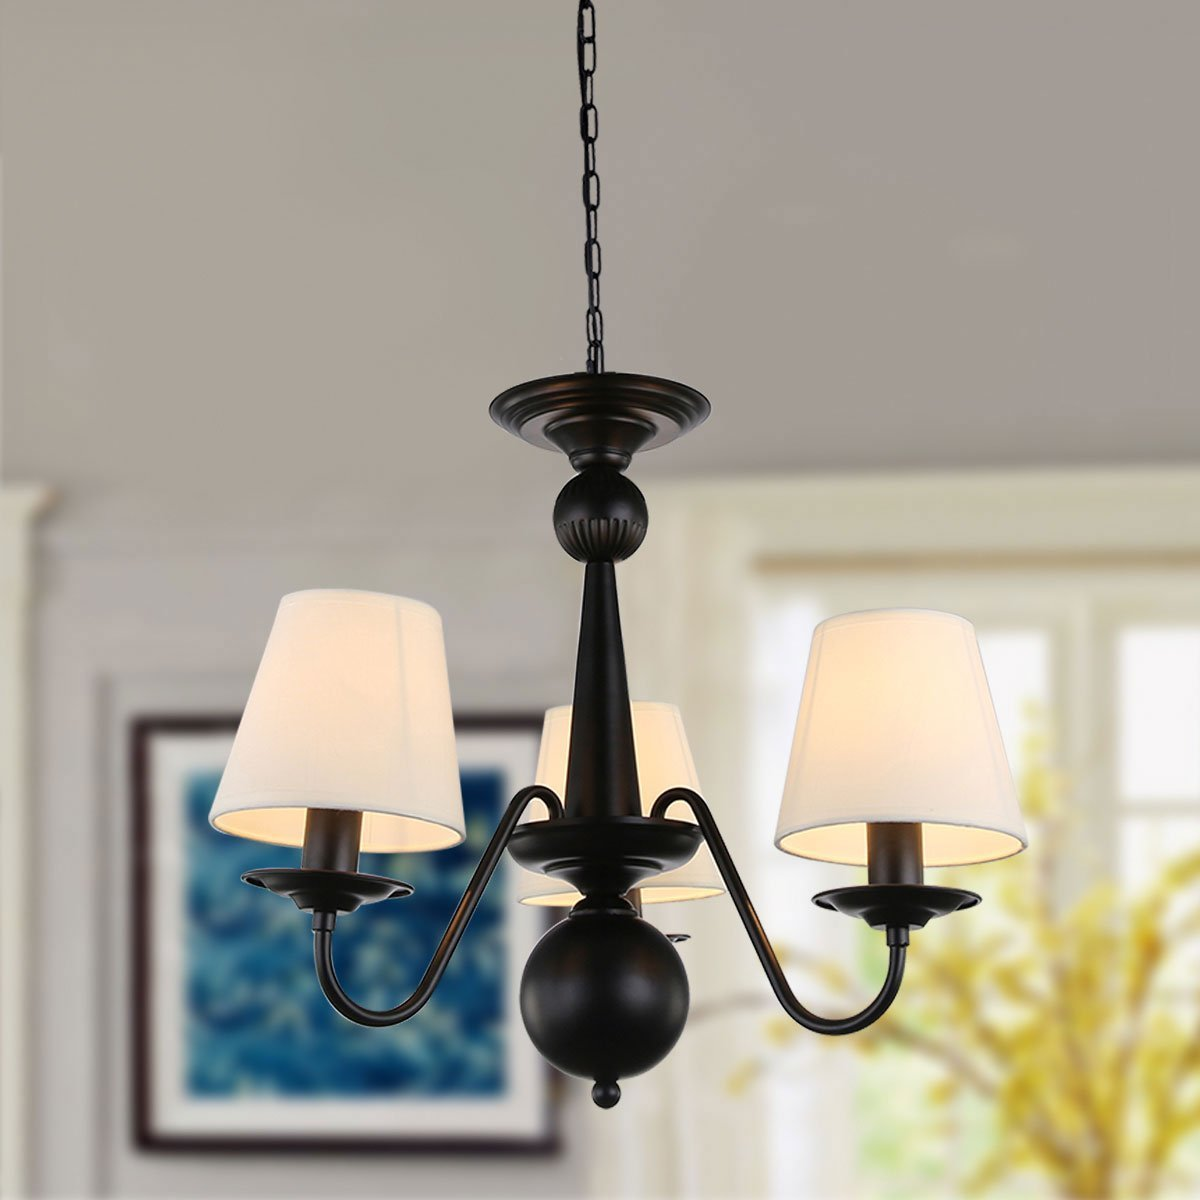 Cloth Cover American Chandeliers Pendant Lighting 3 Lights Antique Black Wrought Iron Ceiling Lamp Fixture Modern White Fabric Lampshade for Restaurant, Dining Room, Living Room by YANCEN (Image #3)